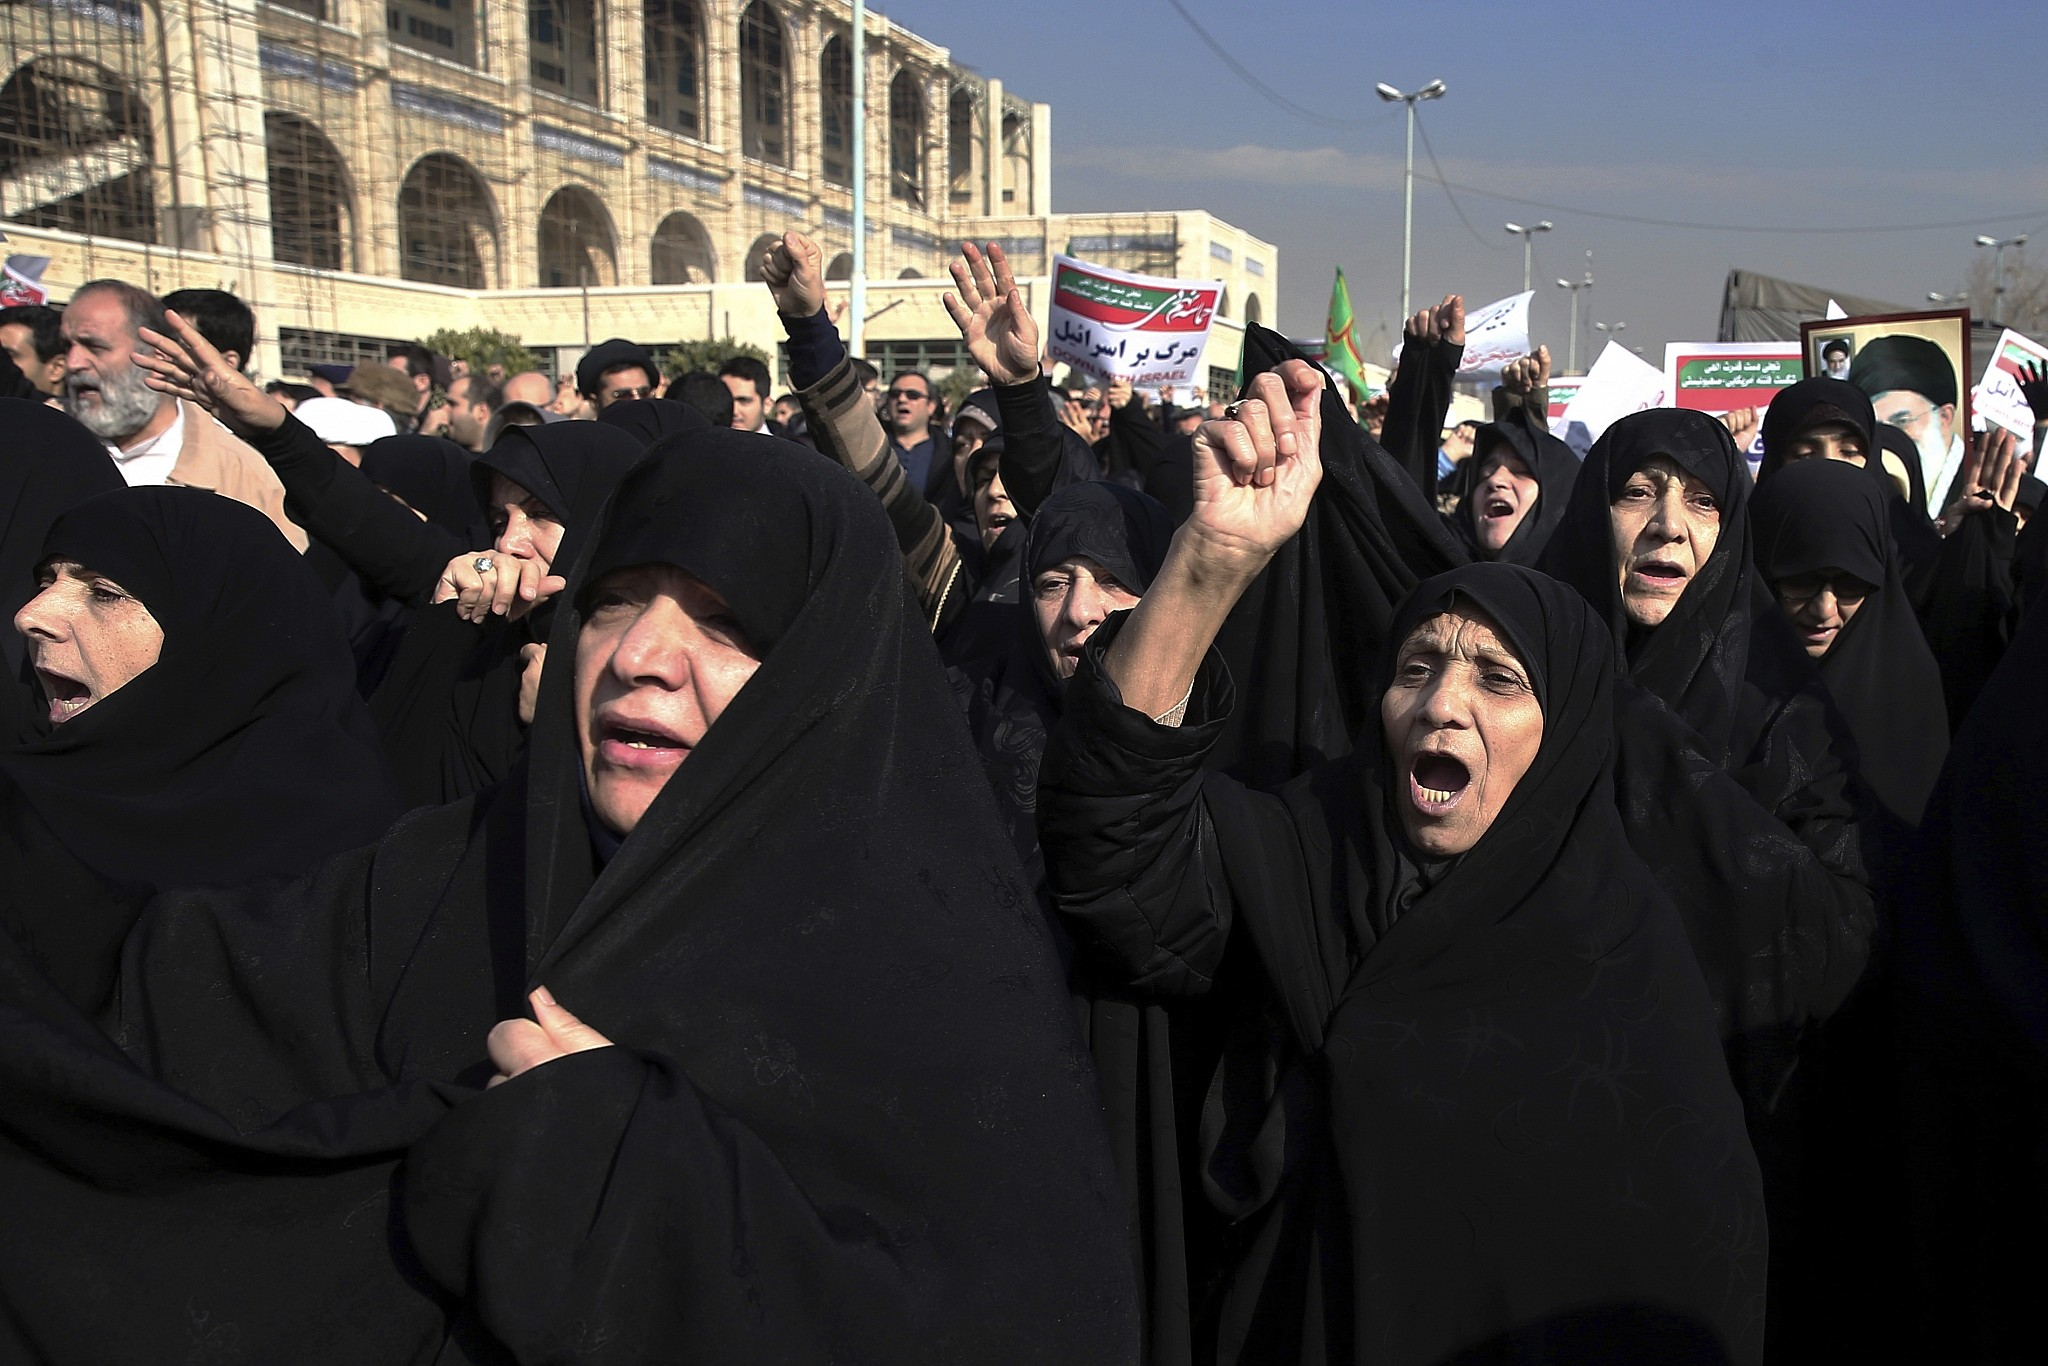 What is happening in Iran (photo) 86